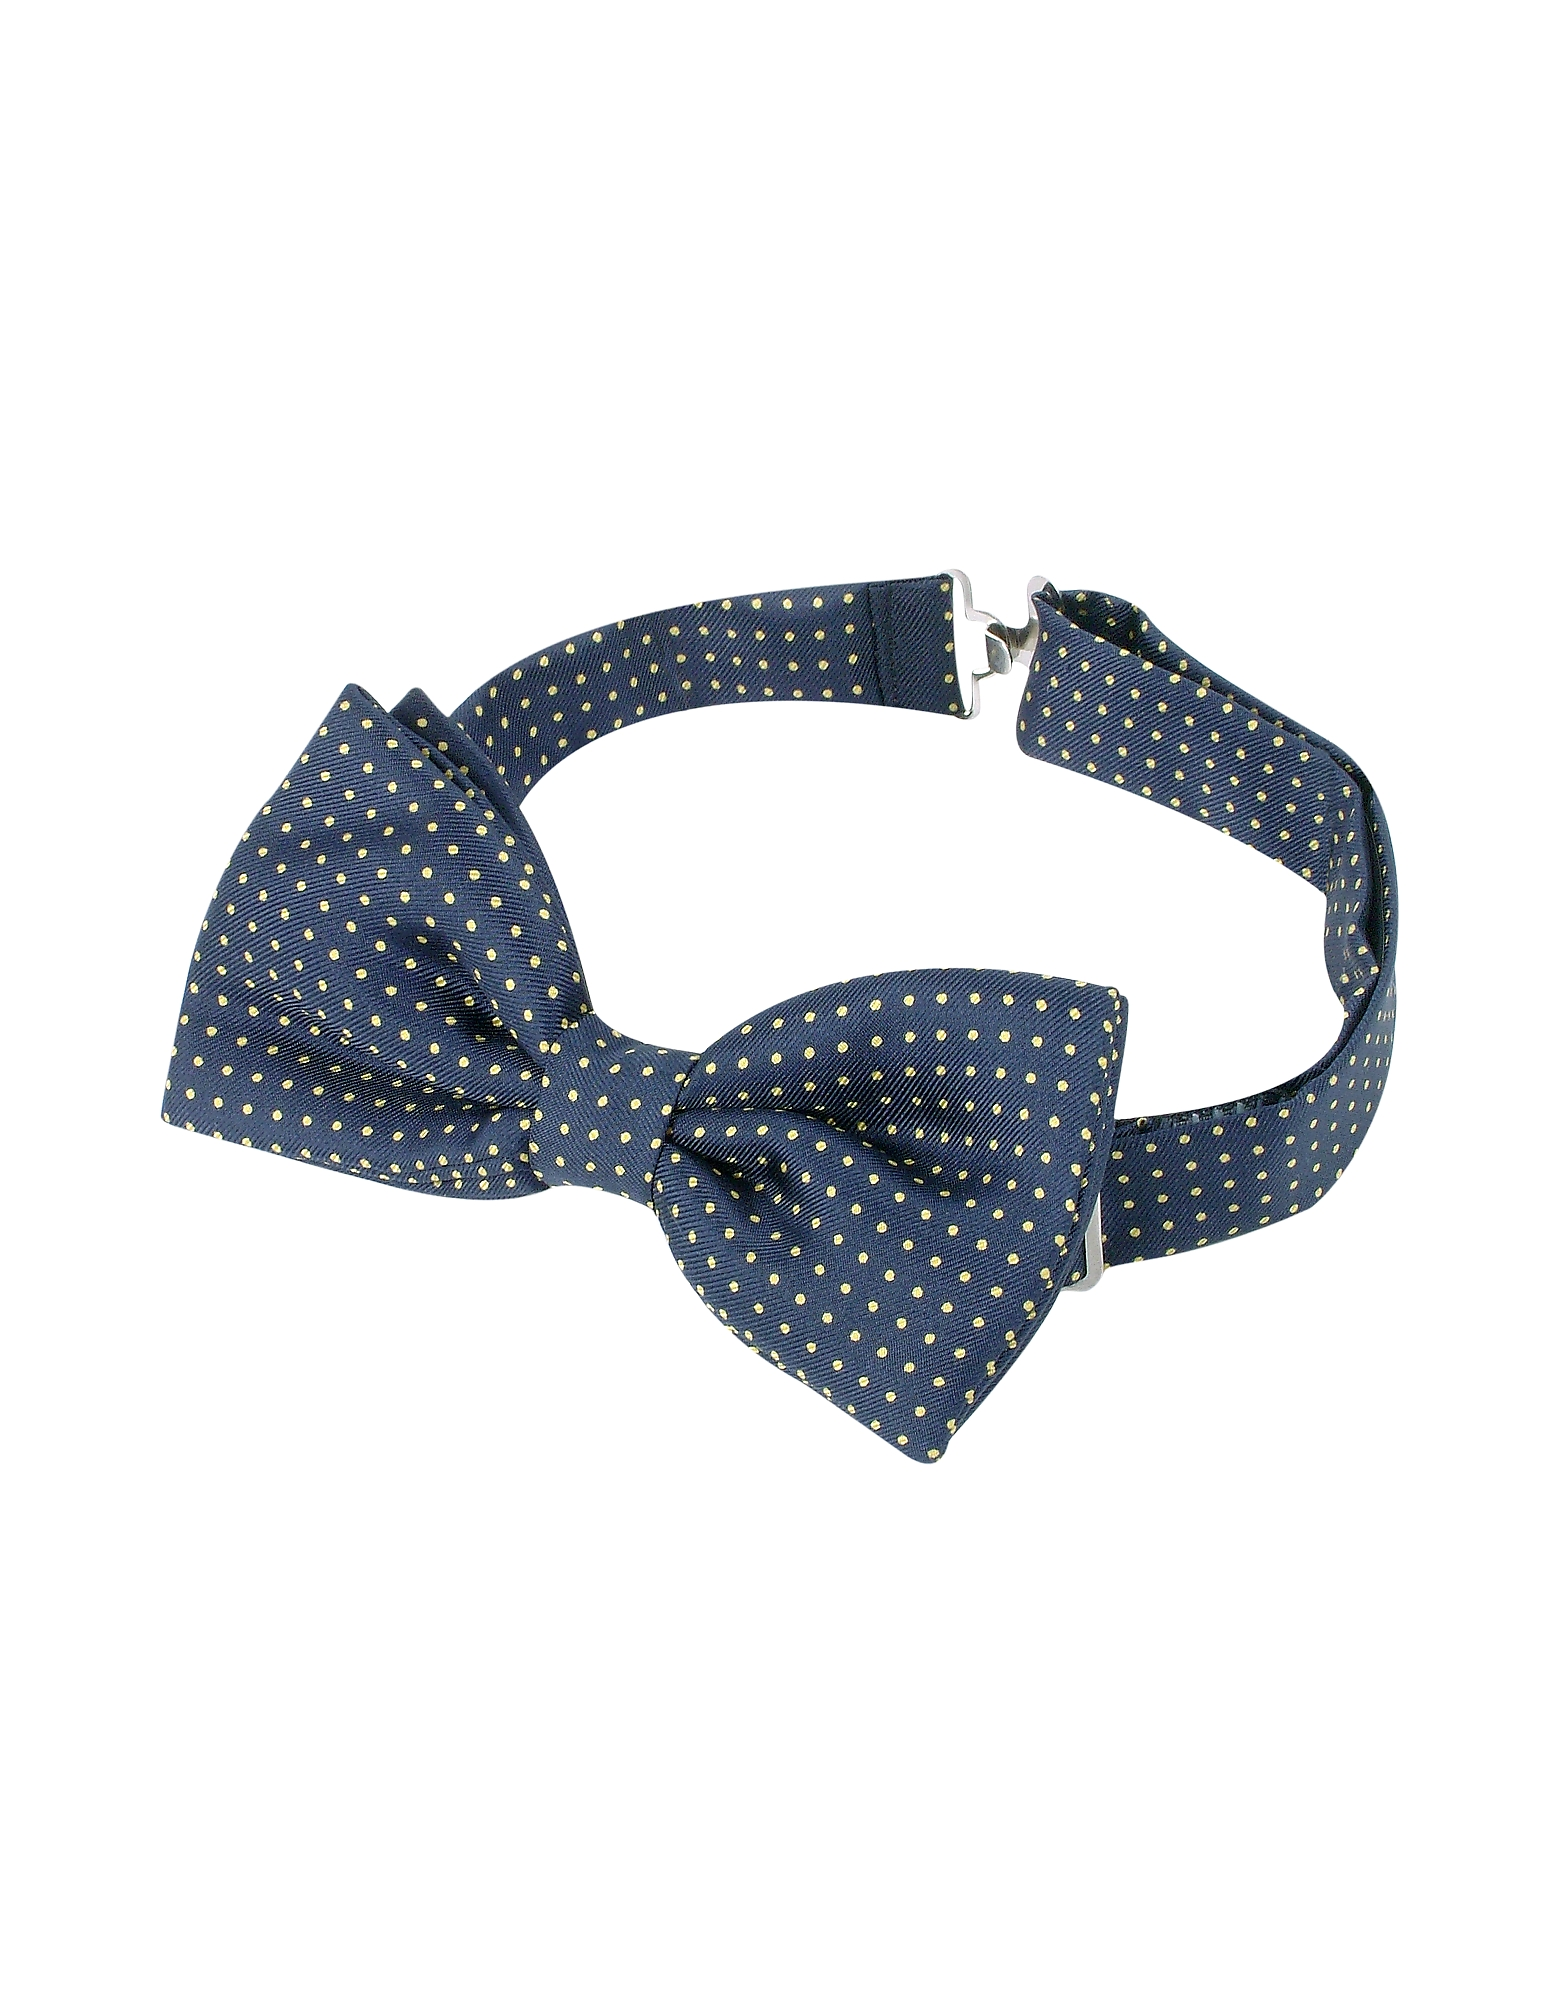 Forzieri Designer Bowties and Cummerbunds, Small Polkadot Pre-Tied Silk Bowtie